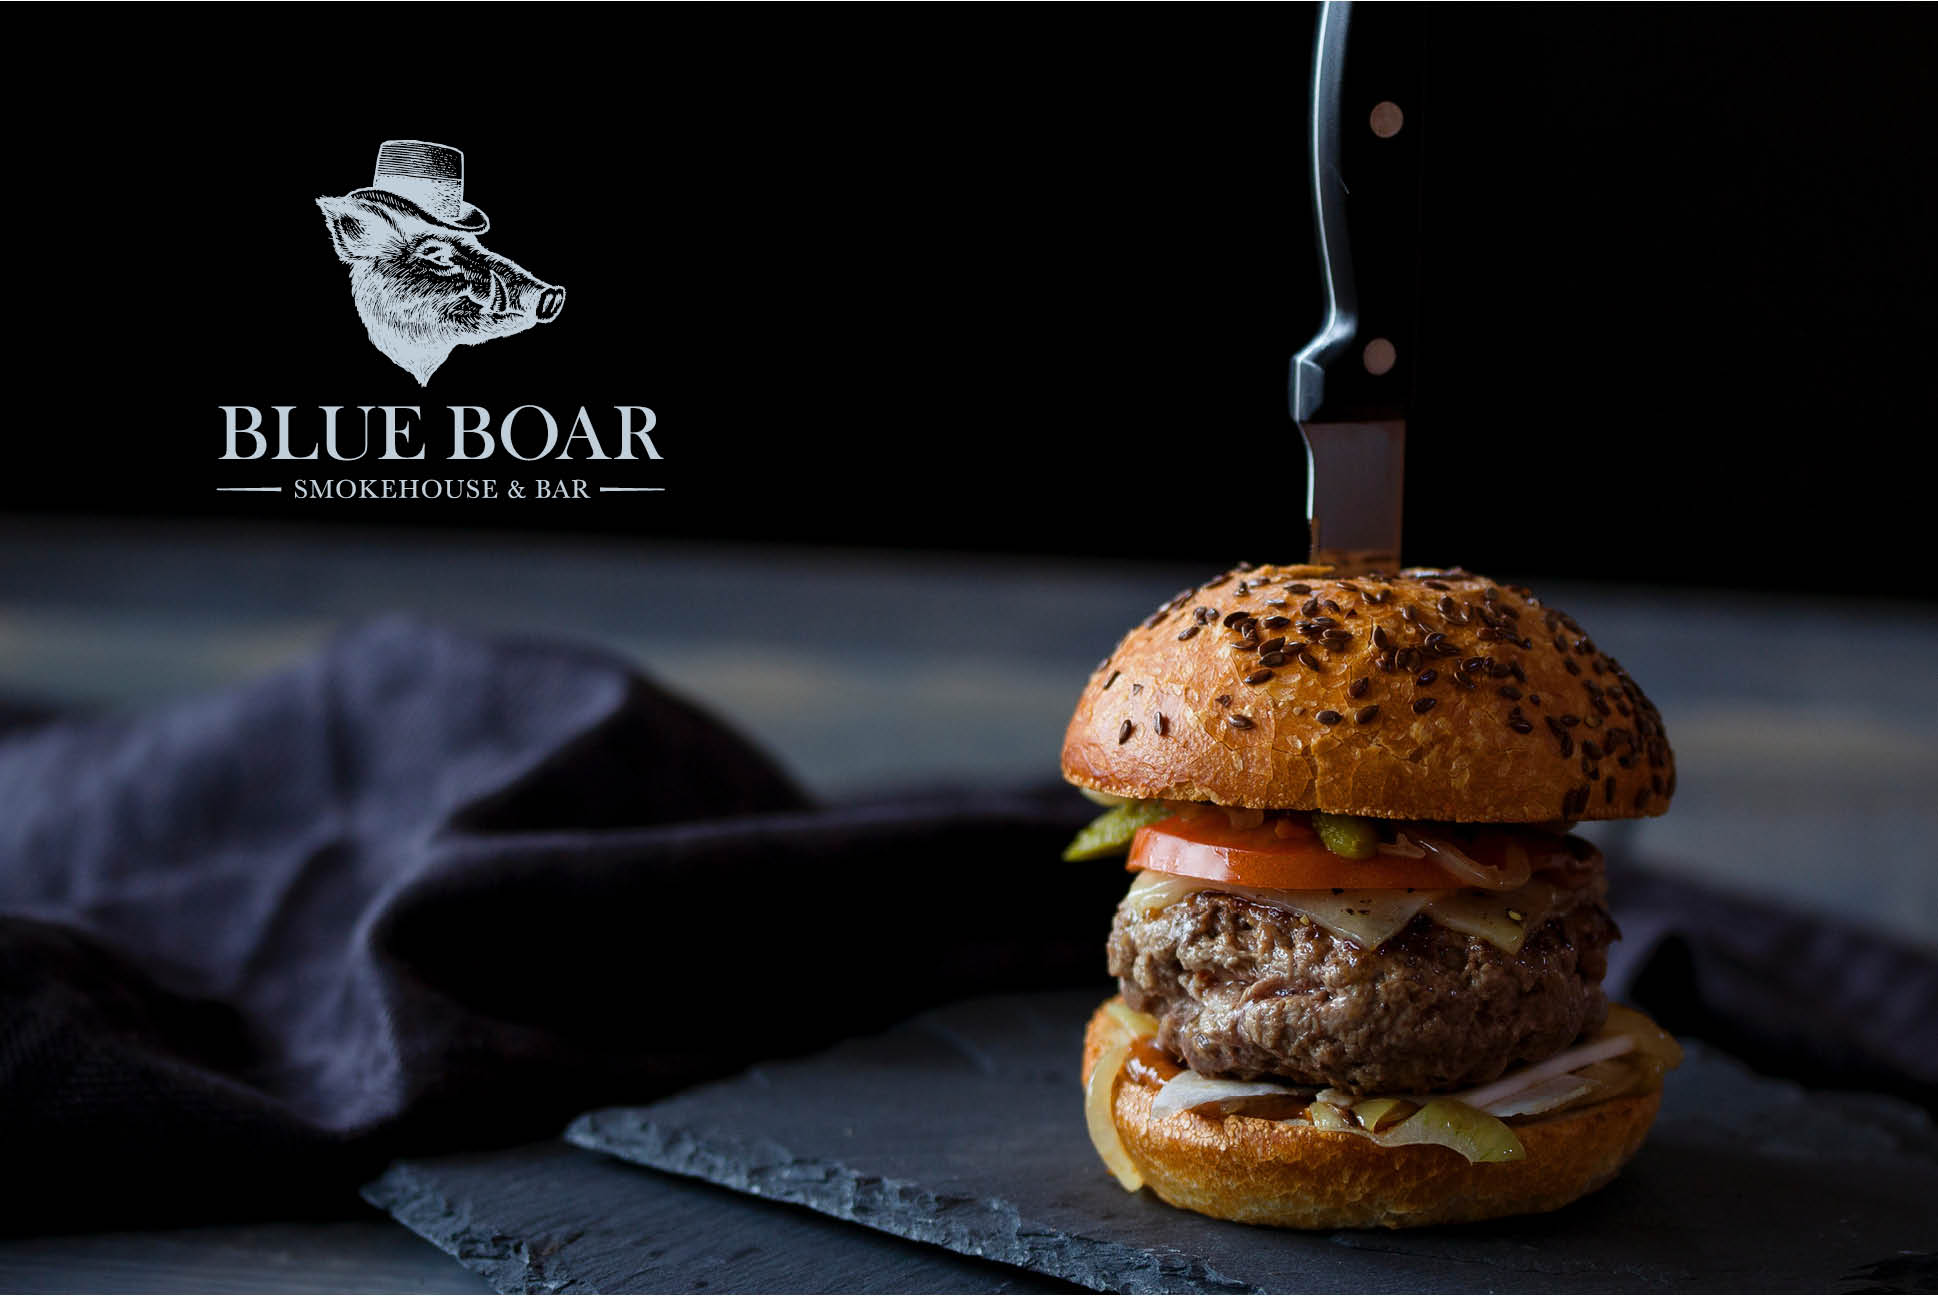 Blue Boar Branding   Branding and Promotional Collateral - Independent Marketing   IM London   Restaurant Marketing in London